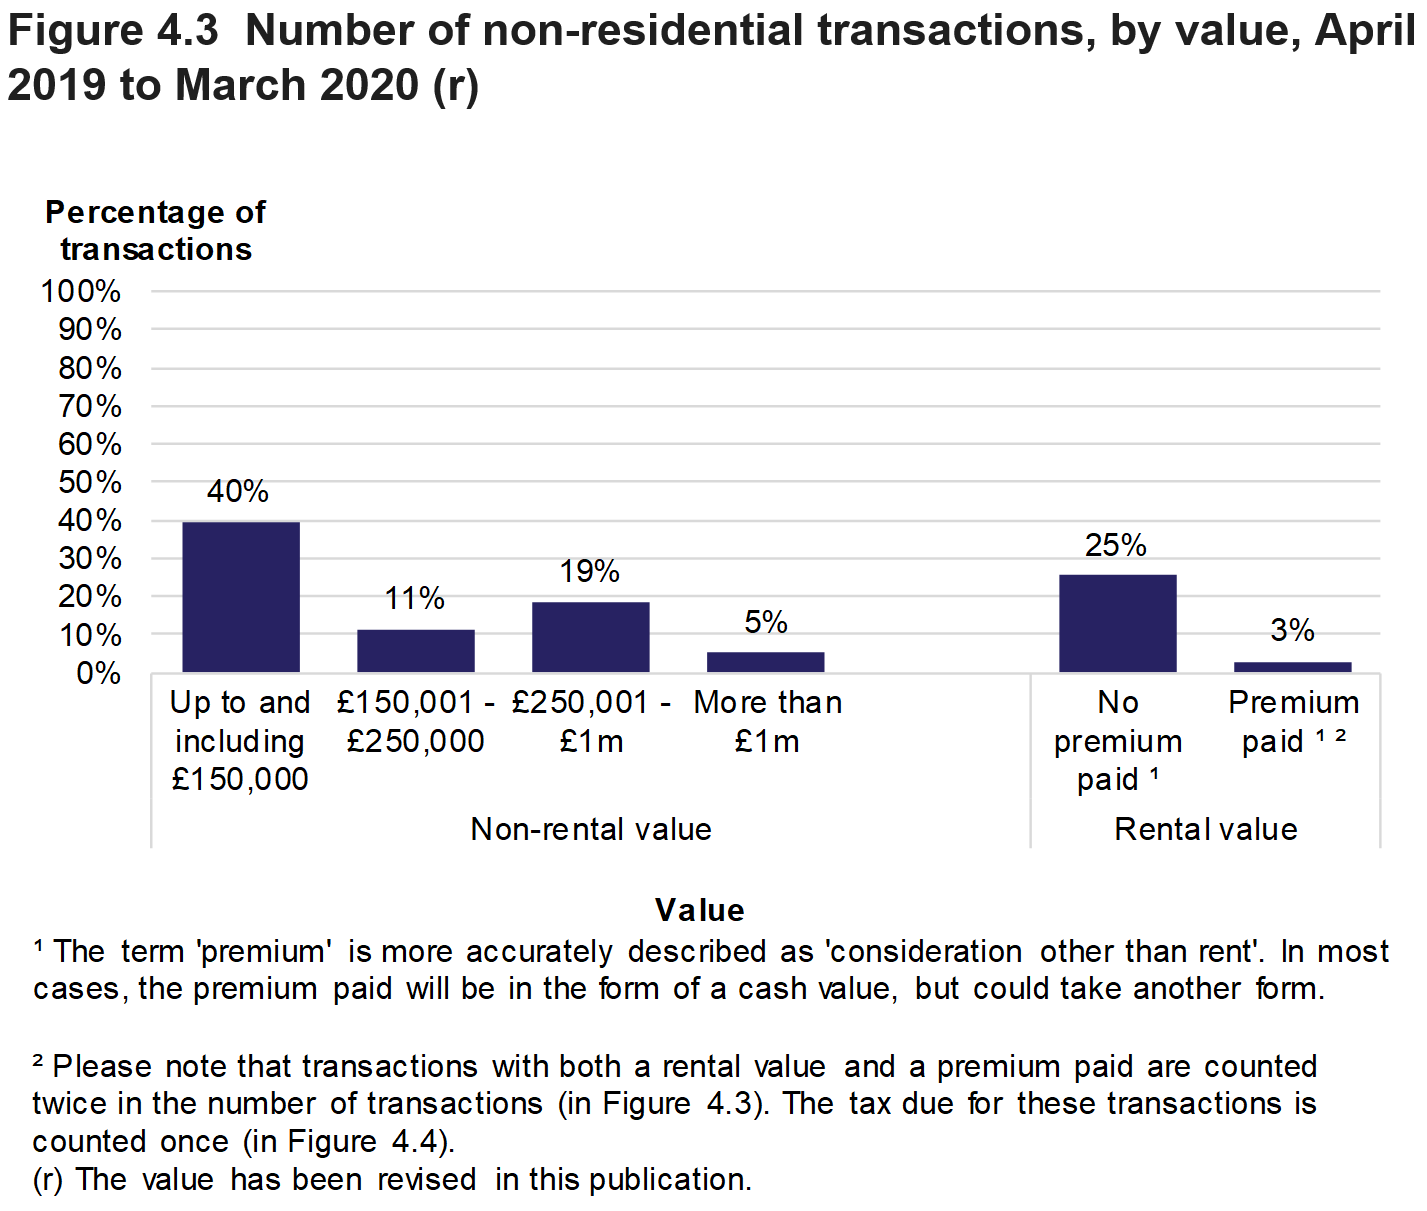 Figure 4.3 shows the number of non-residential transactions by value of the property. Data is presented as the percentage of transactions and relates to transactions effective in April 2019 to March 2020.